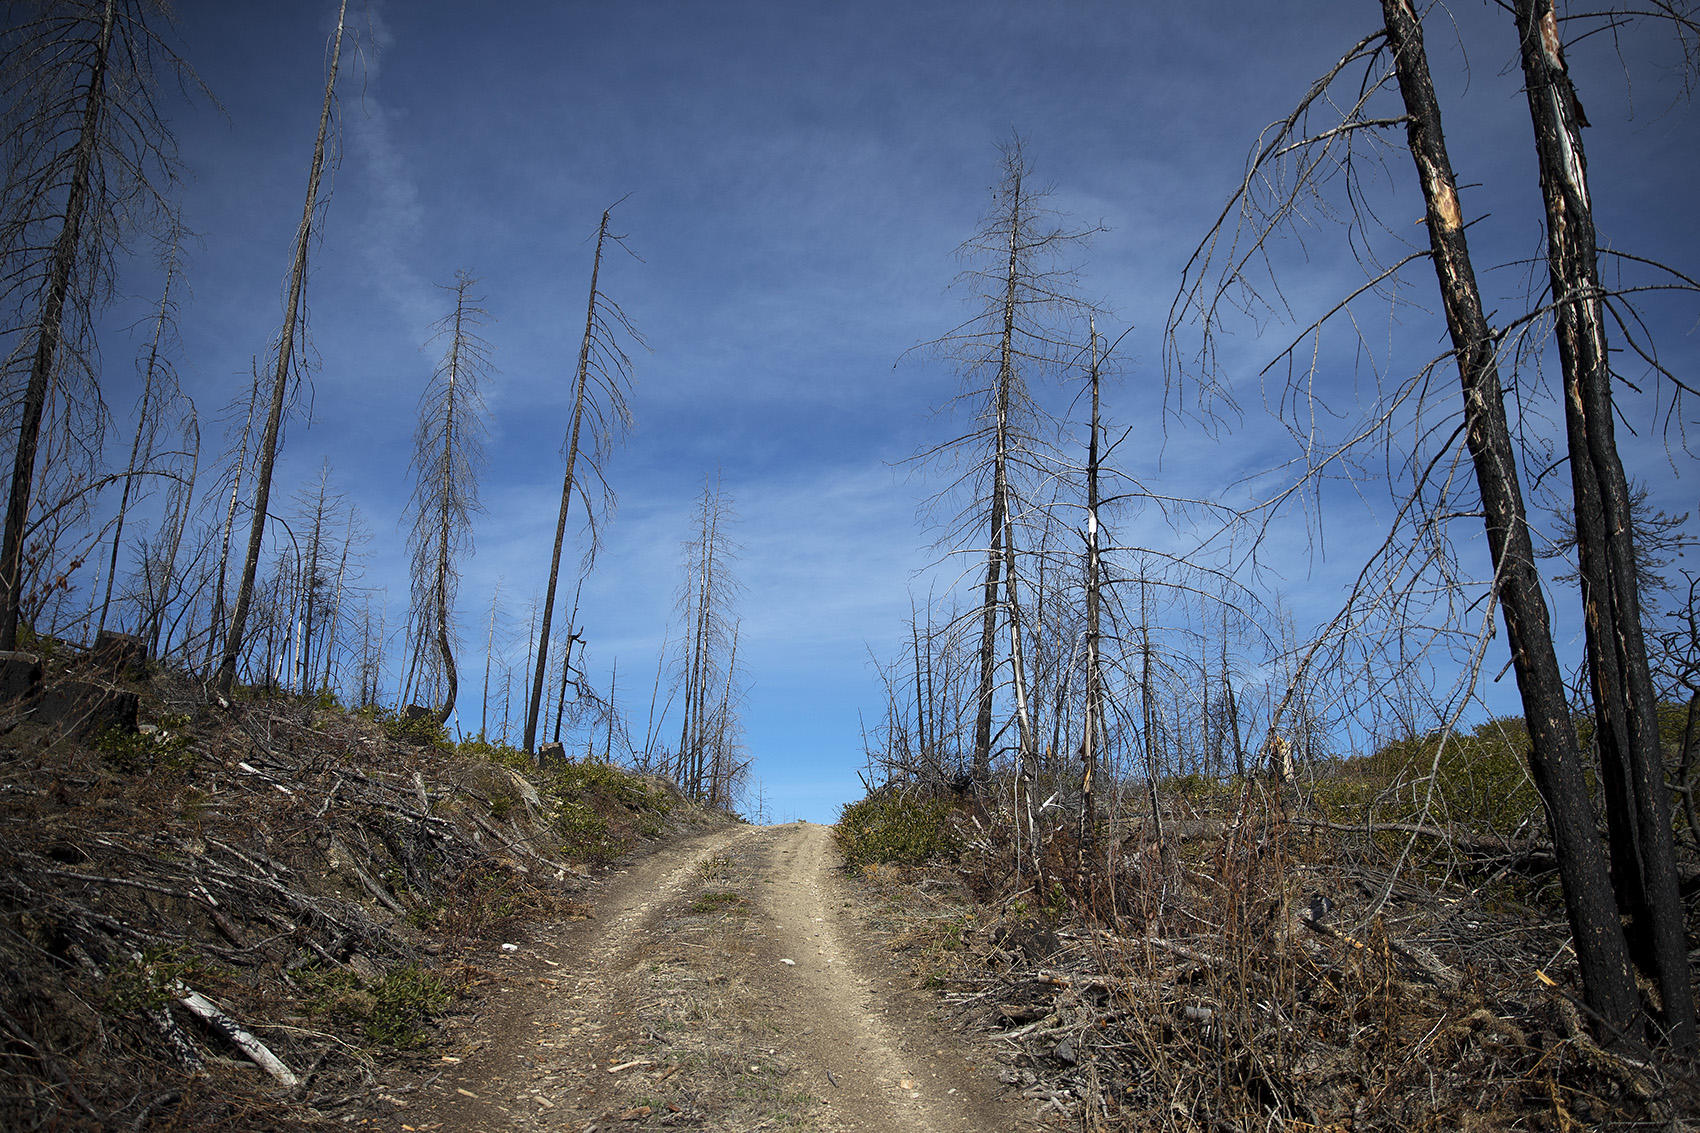 KUOW - Snow melts, anxiety rises: Wildfire season is here